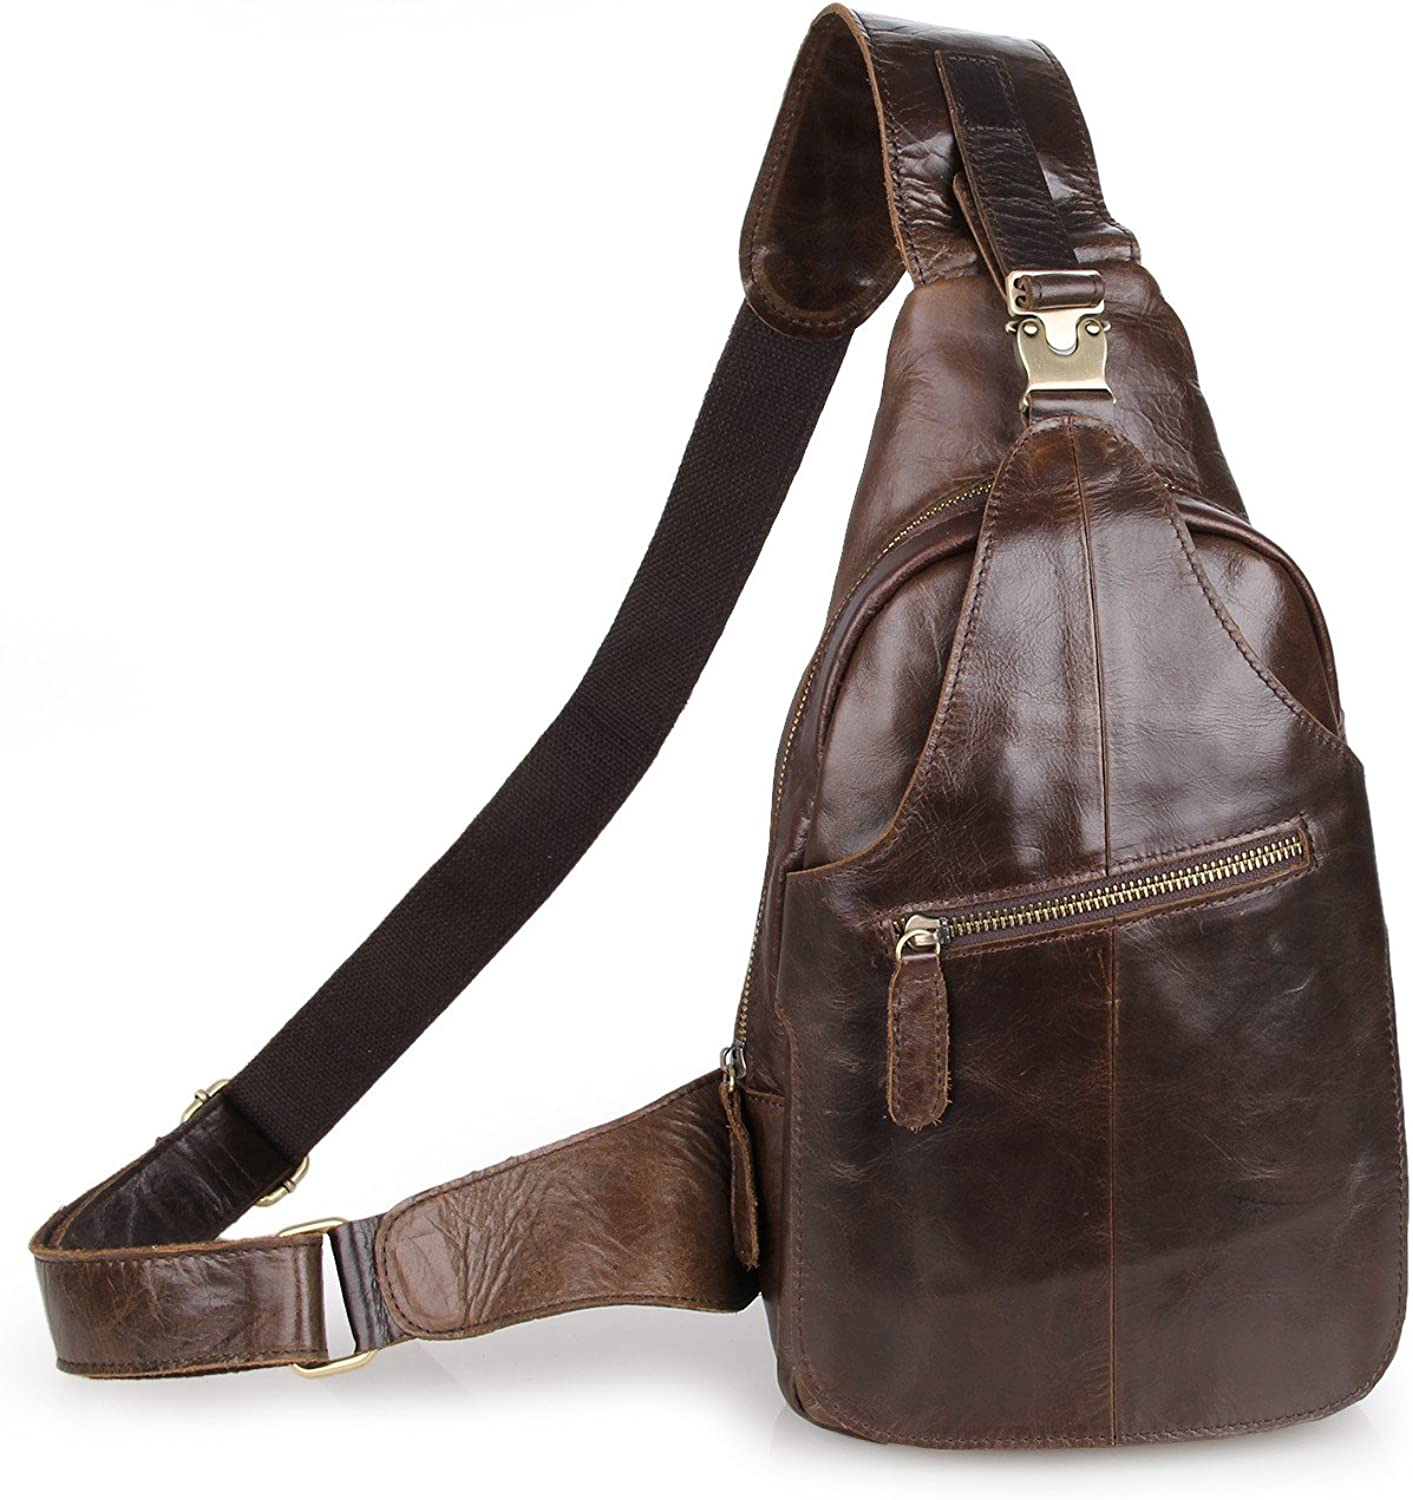 Yilen Casual Daypack Top Grain Cow Leather Sling Shoulder Backpack Chest Bag